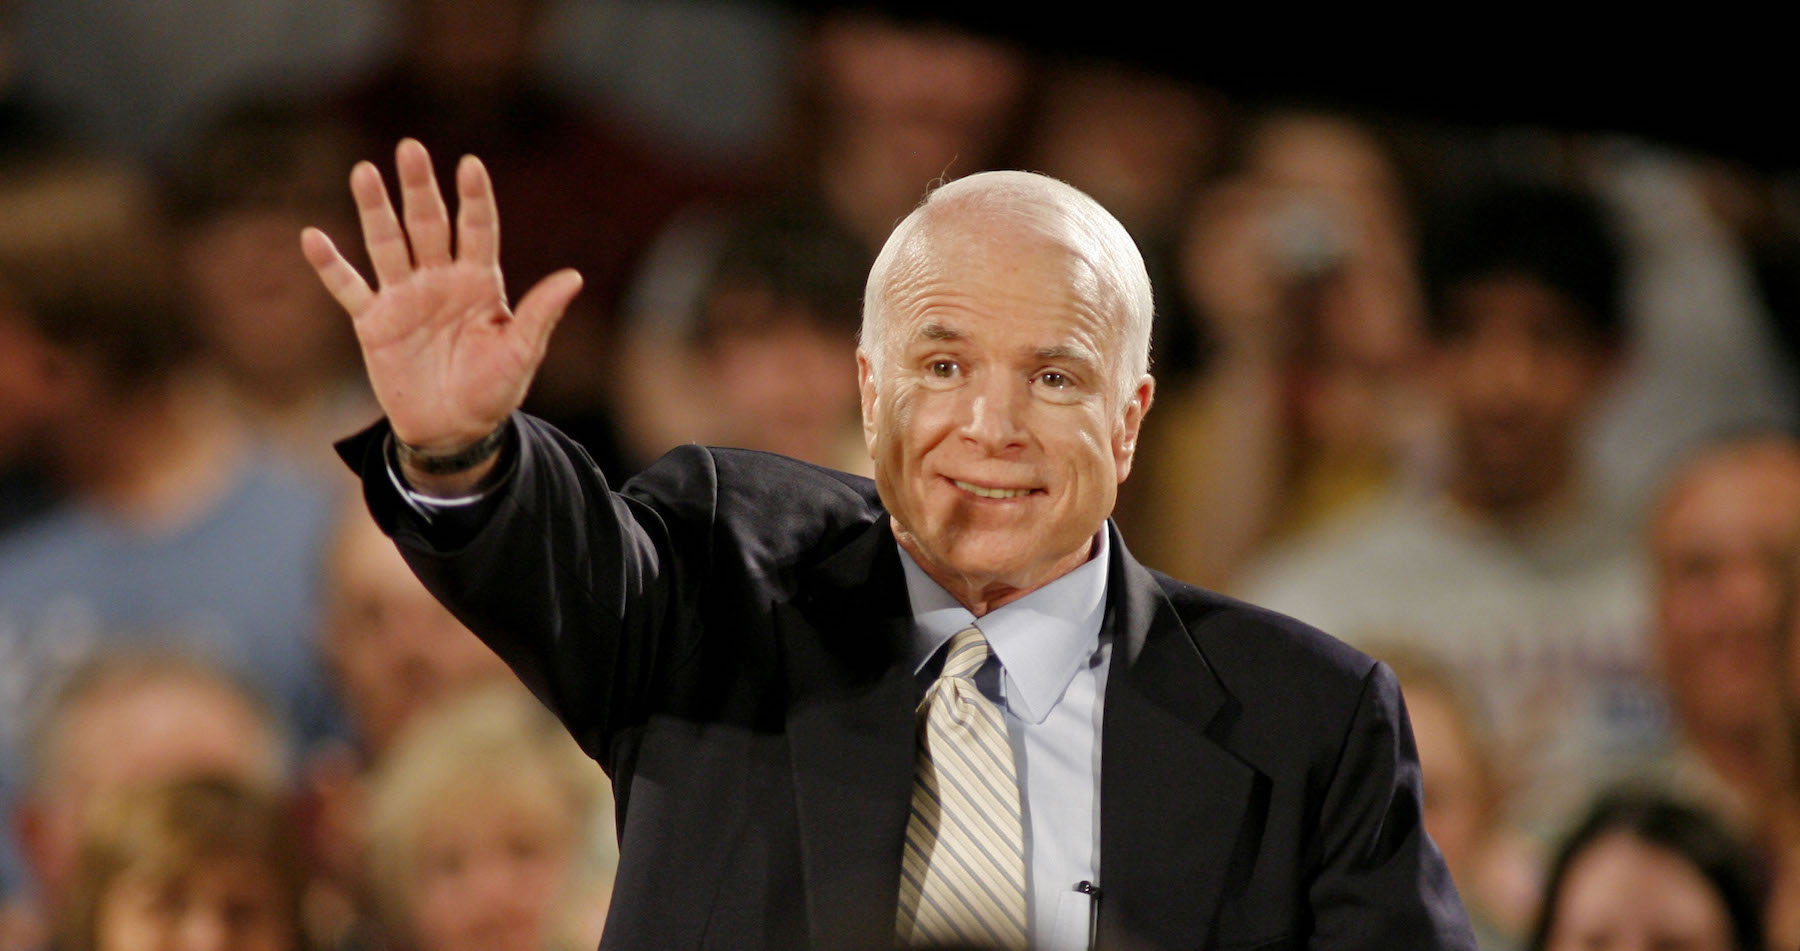 <div class='meta'><div class='origin-logo' data-origin='AP'></div><span class='caption-text' data-credit='AP Photo/Darren Hauck'>Republican presidential candidate Sen. John McCain, R-Ariz., waves to supporters before speaking at a town hall-style meeting on May 29, 2008, in Greendale, Wisc.</span></div>